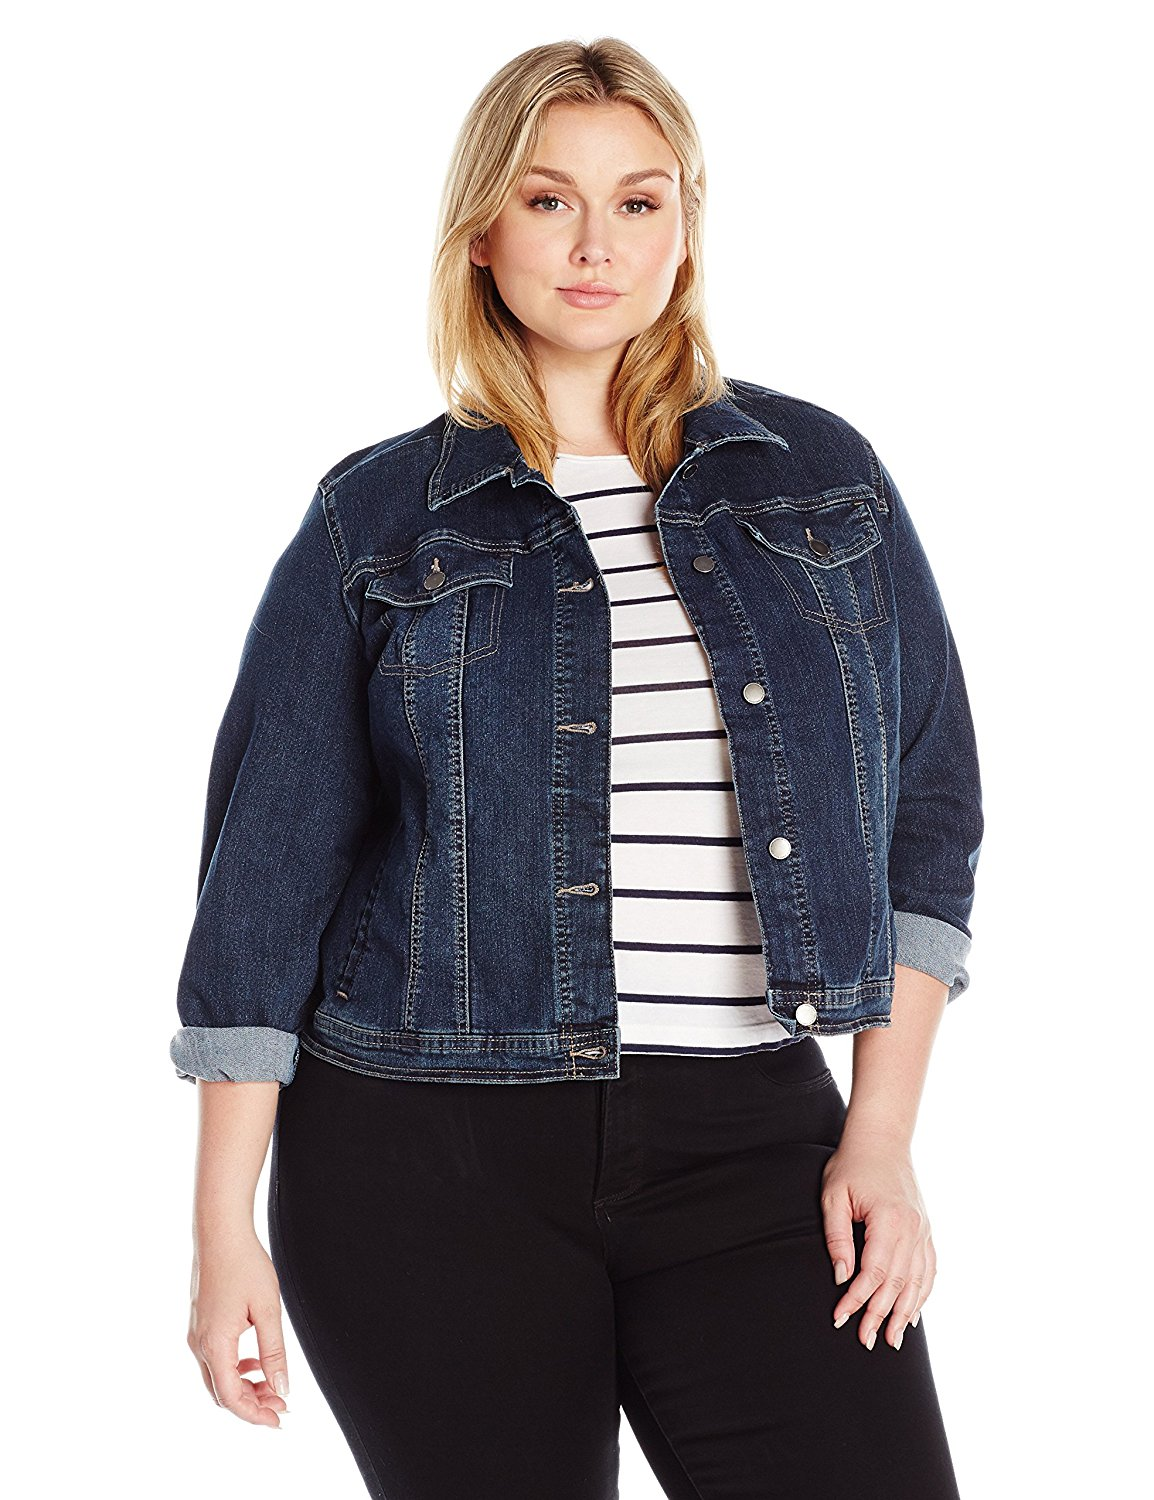 8d0612cd580 Get Quotations · Riders by Lee Indigo Women s Plus Size Denim Jacket